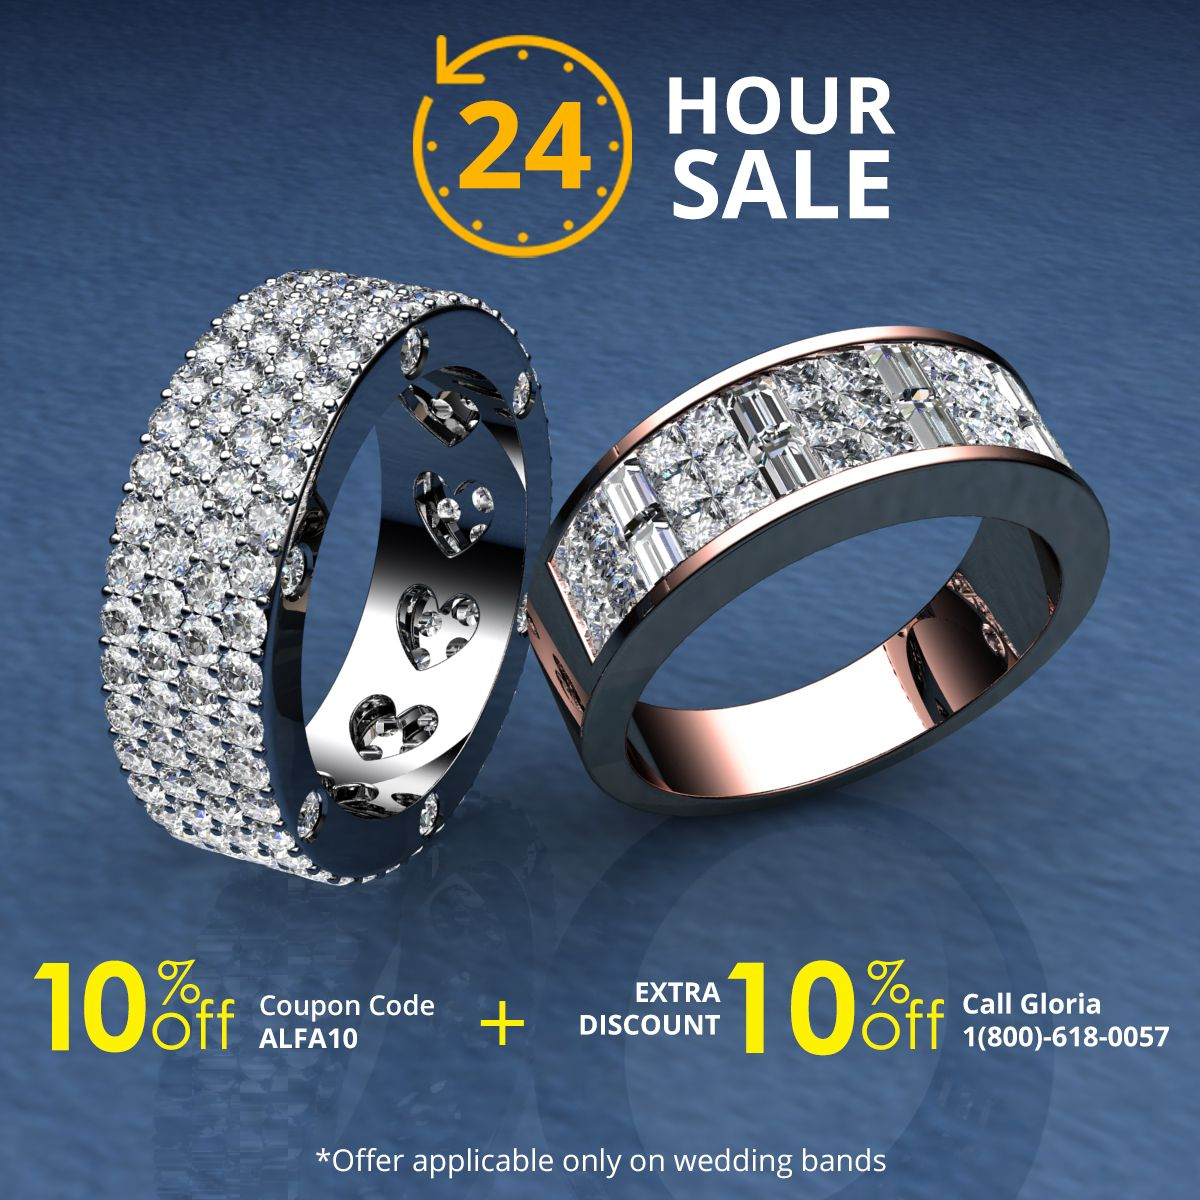 Enjoy Double Benefit...! Hurry 24 HOUR SALE Our Amazing